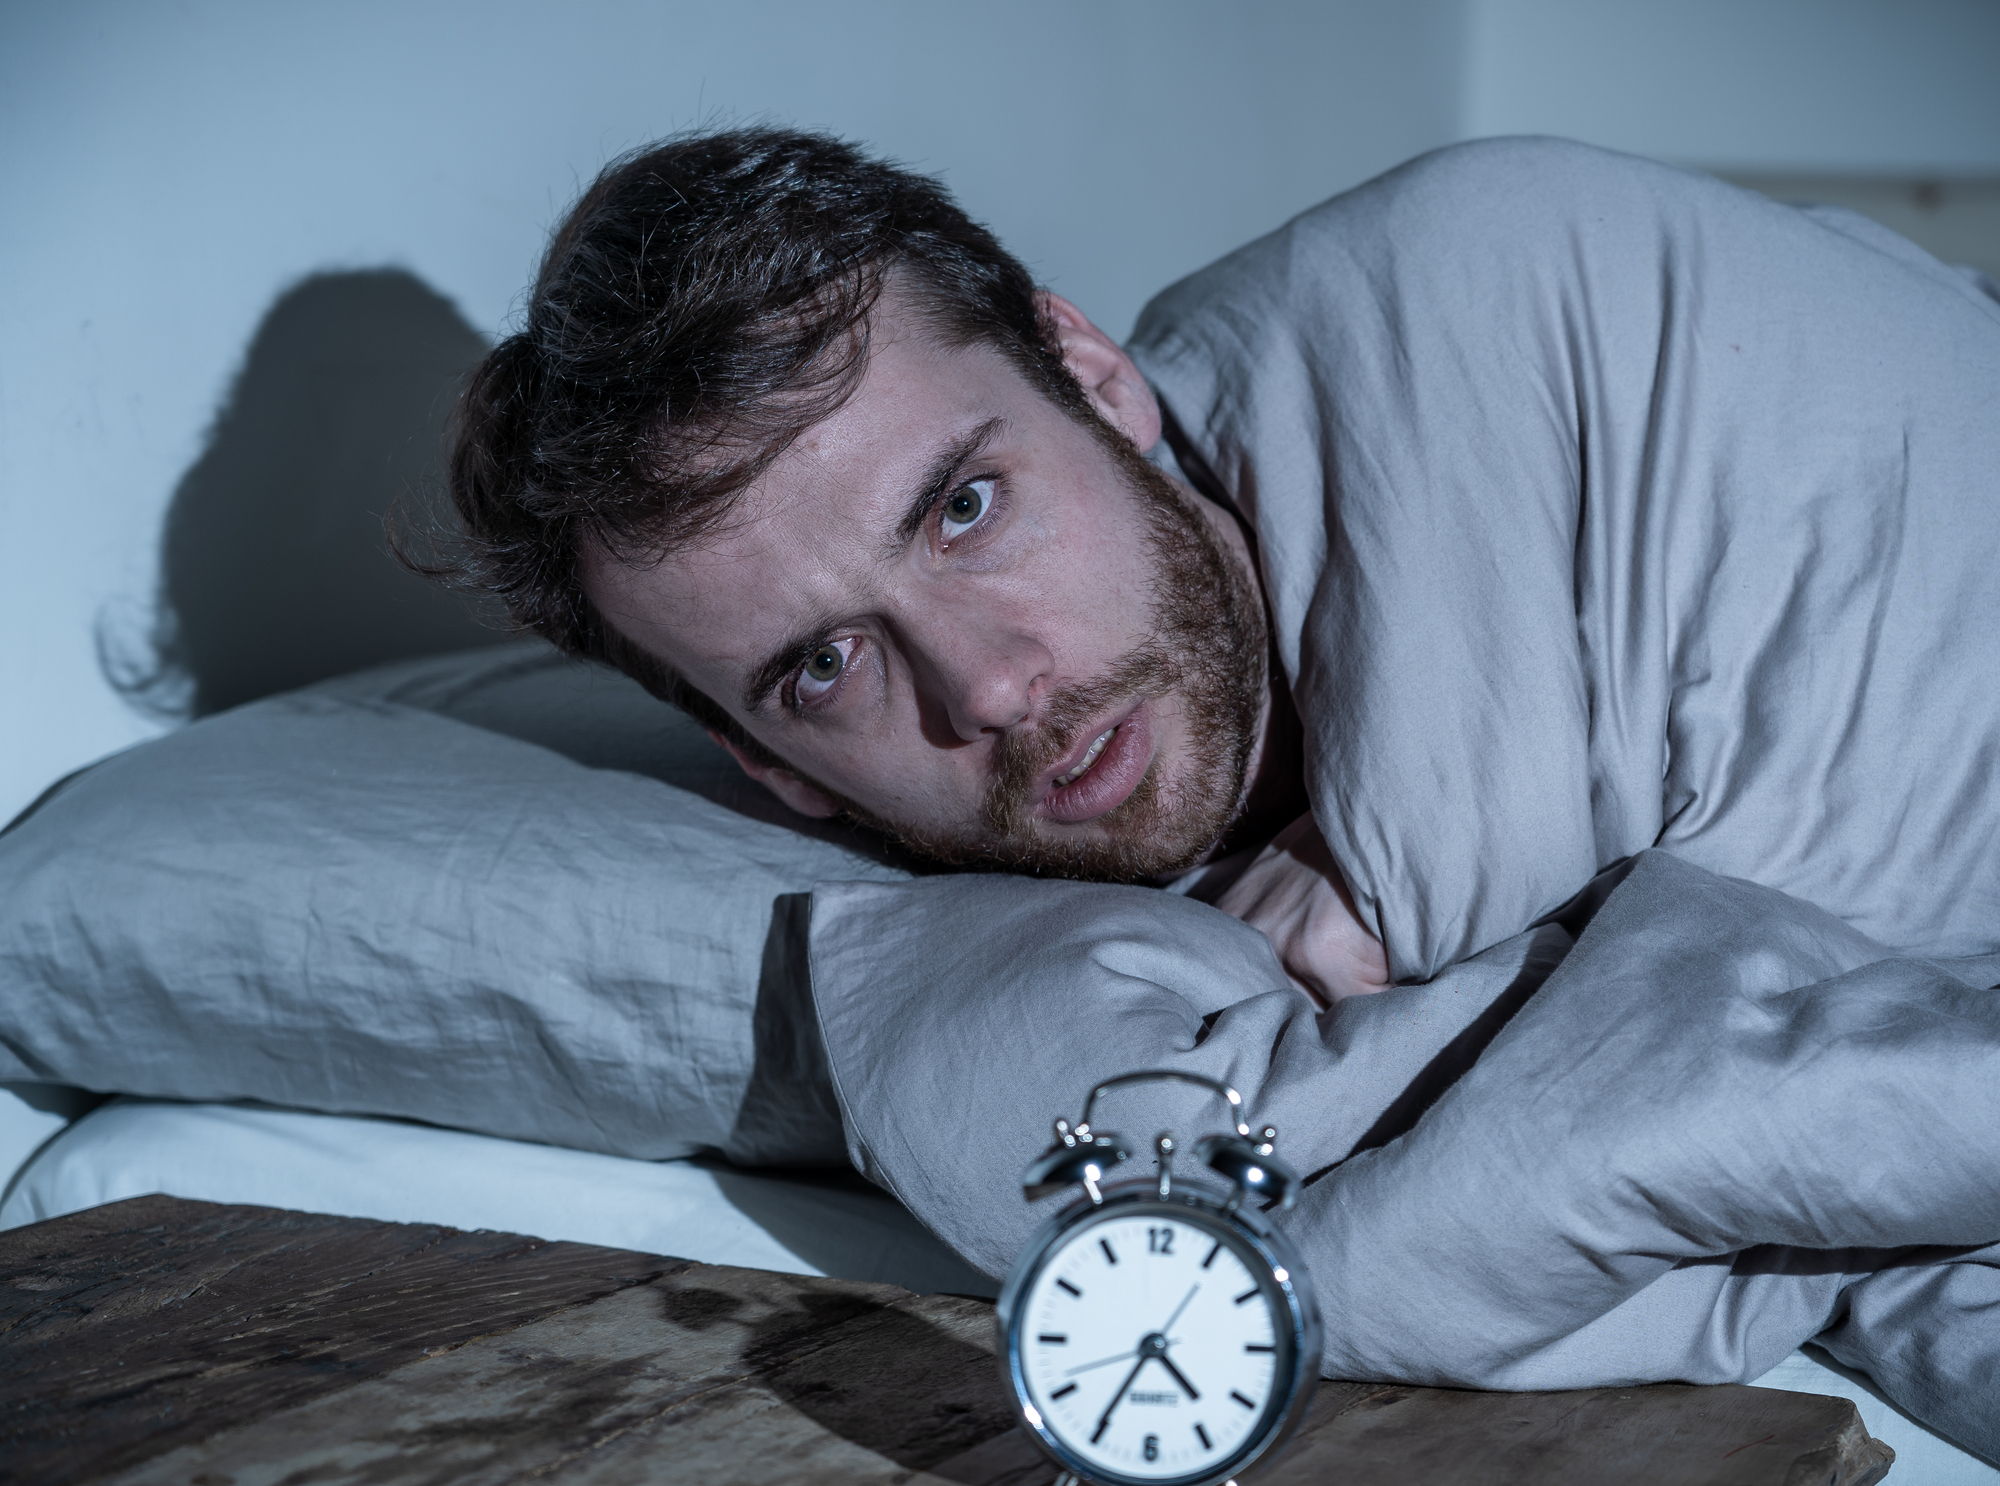 A long-term study found persistent sleep durations of less than six hours in middle age were linked with a 30-percent increased risk of developing dementia later in life